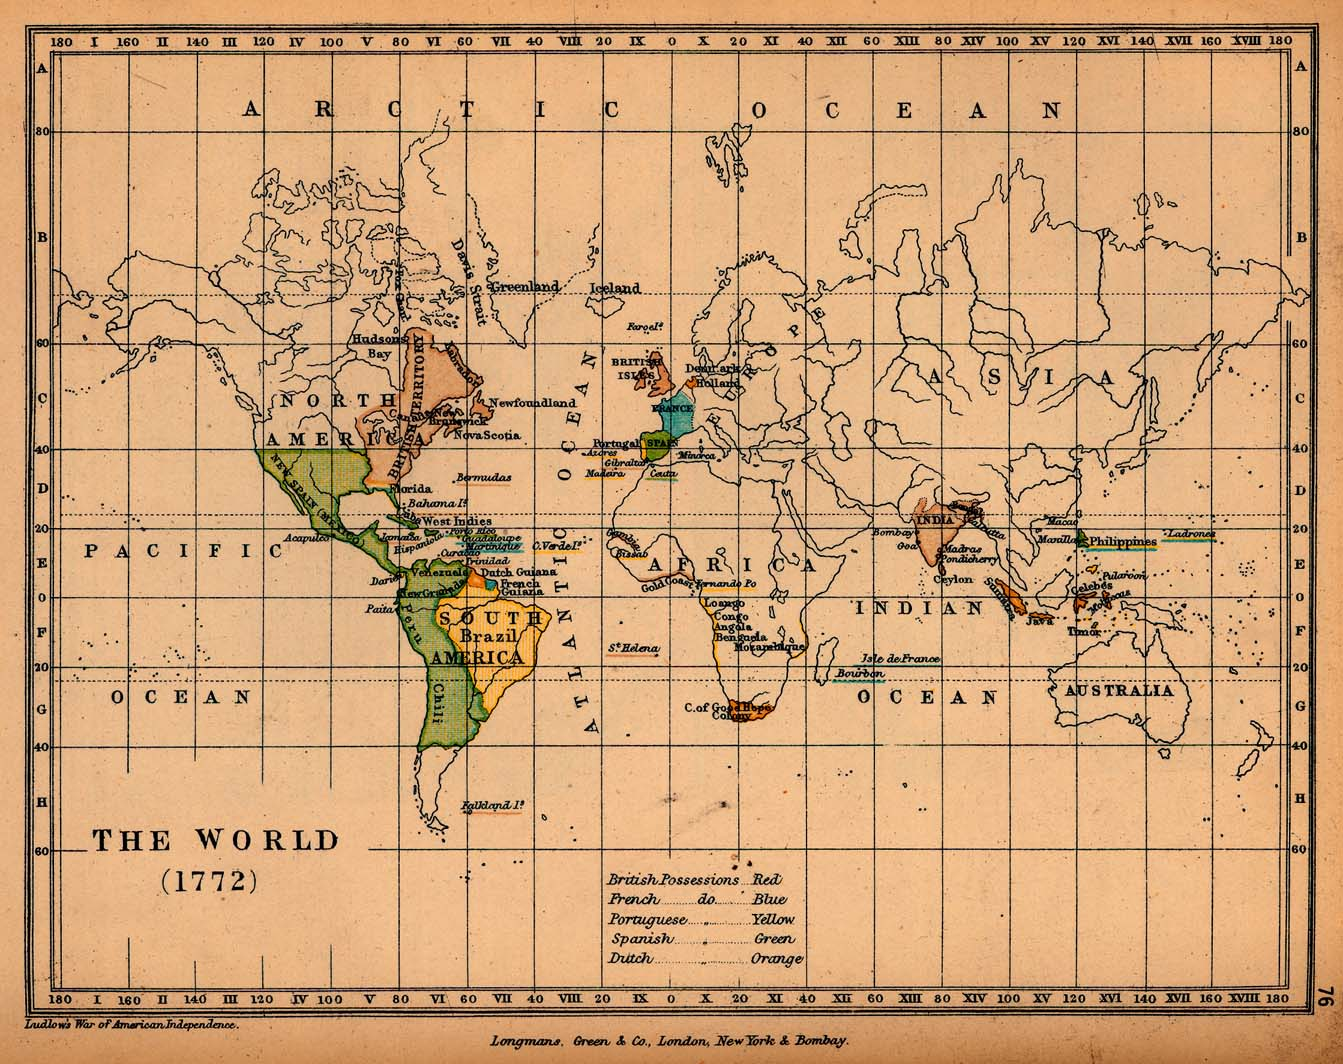 World historical maps perry castaeda map collection ut library the world 1772 gumiabroncs Images